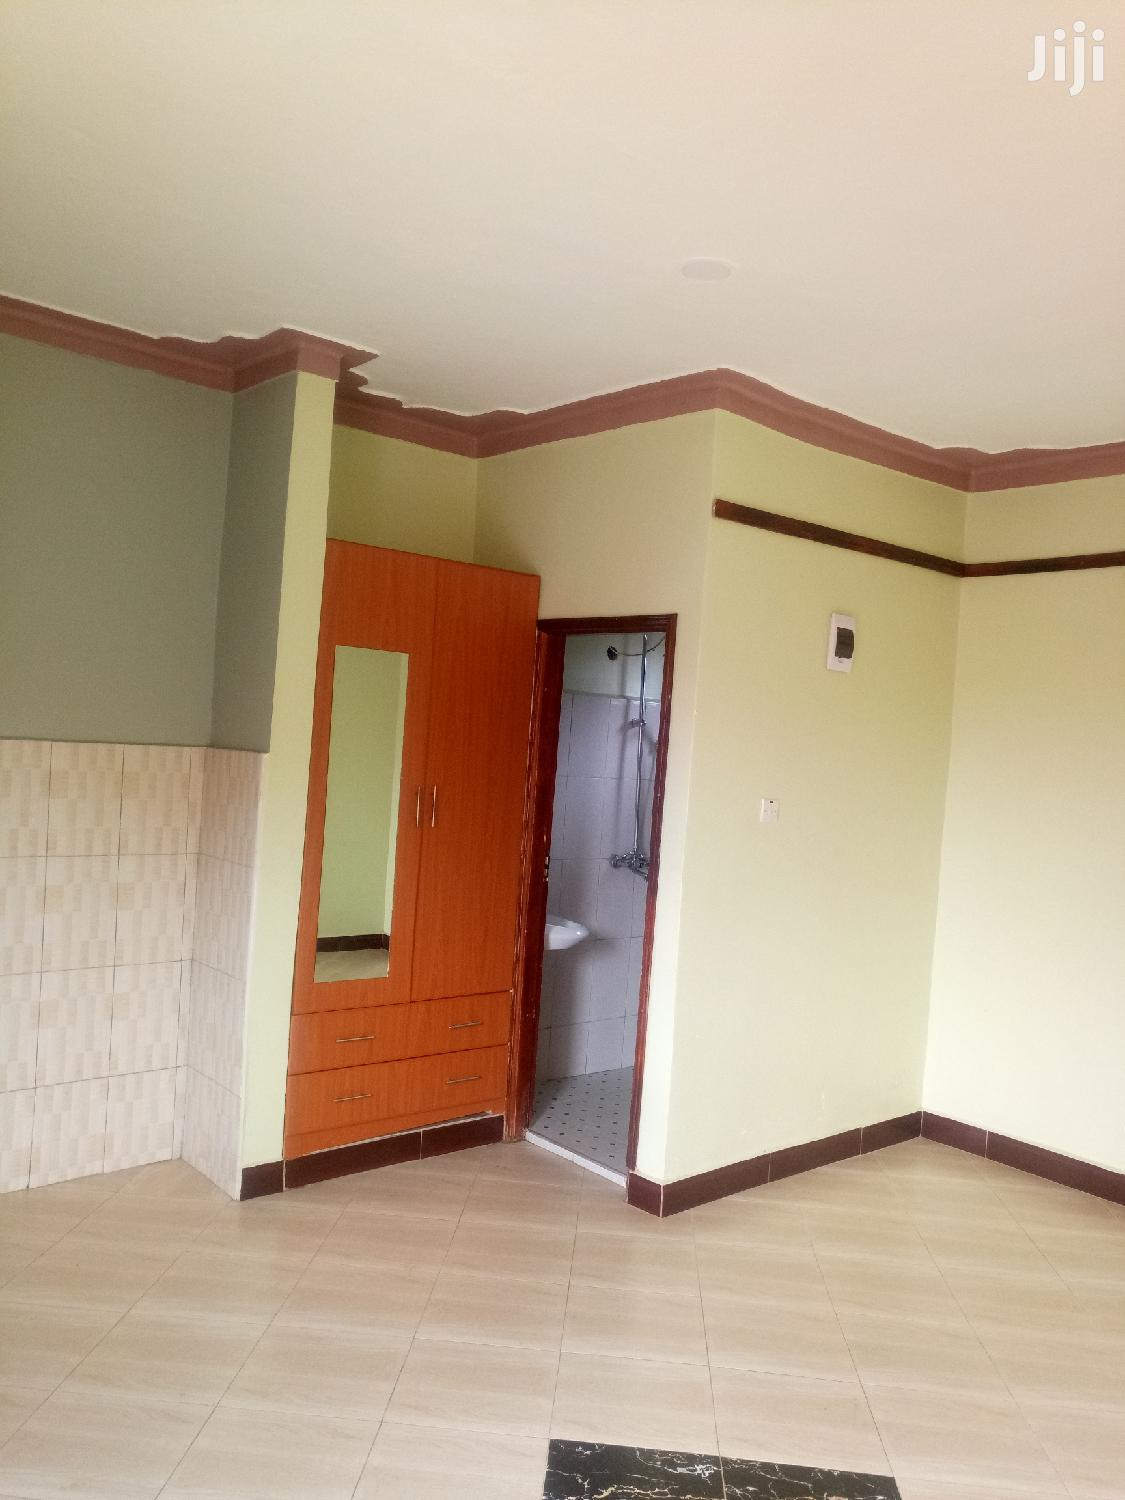 Mutungo Studio Single Room House for Rent | Houses & Apartments For Rent for sale in Kampala, Central Region, Uganda